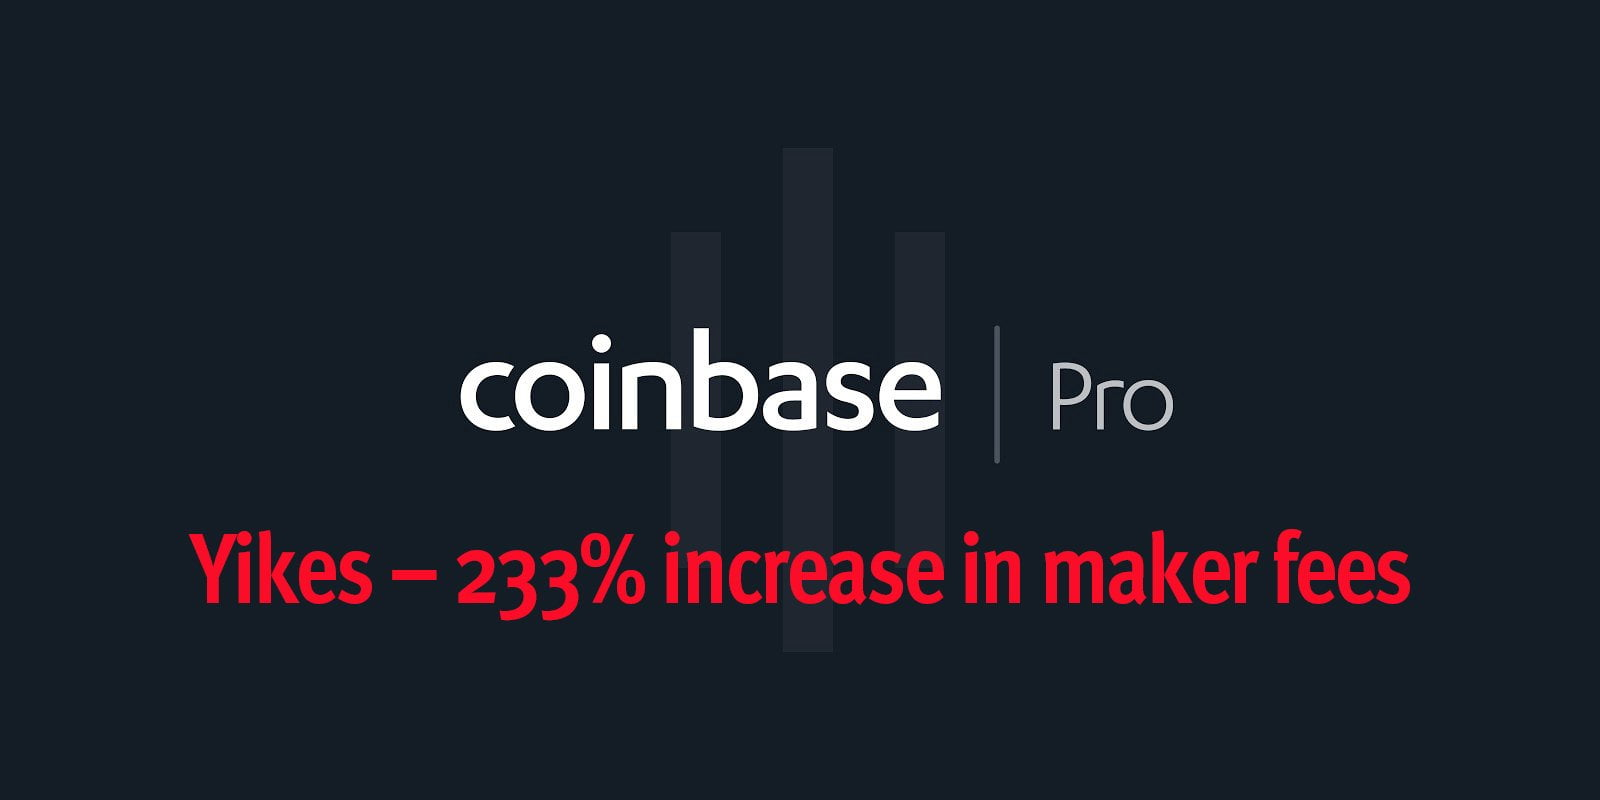 Coinbase Hikes Fees 233% On Pro Site Prompting Outrage From Traders 25